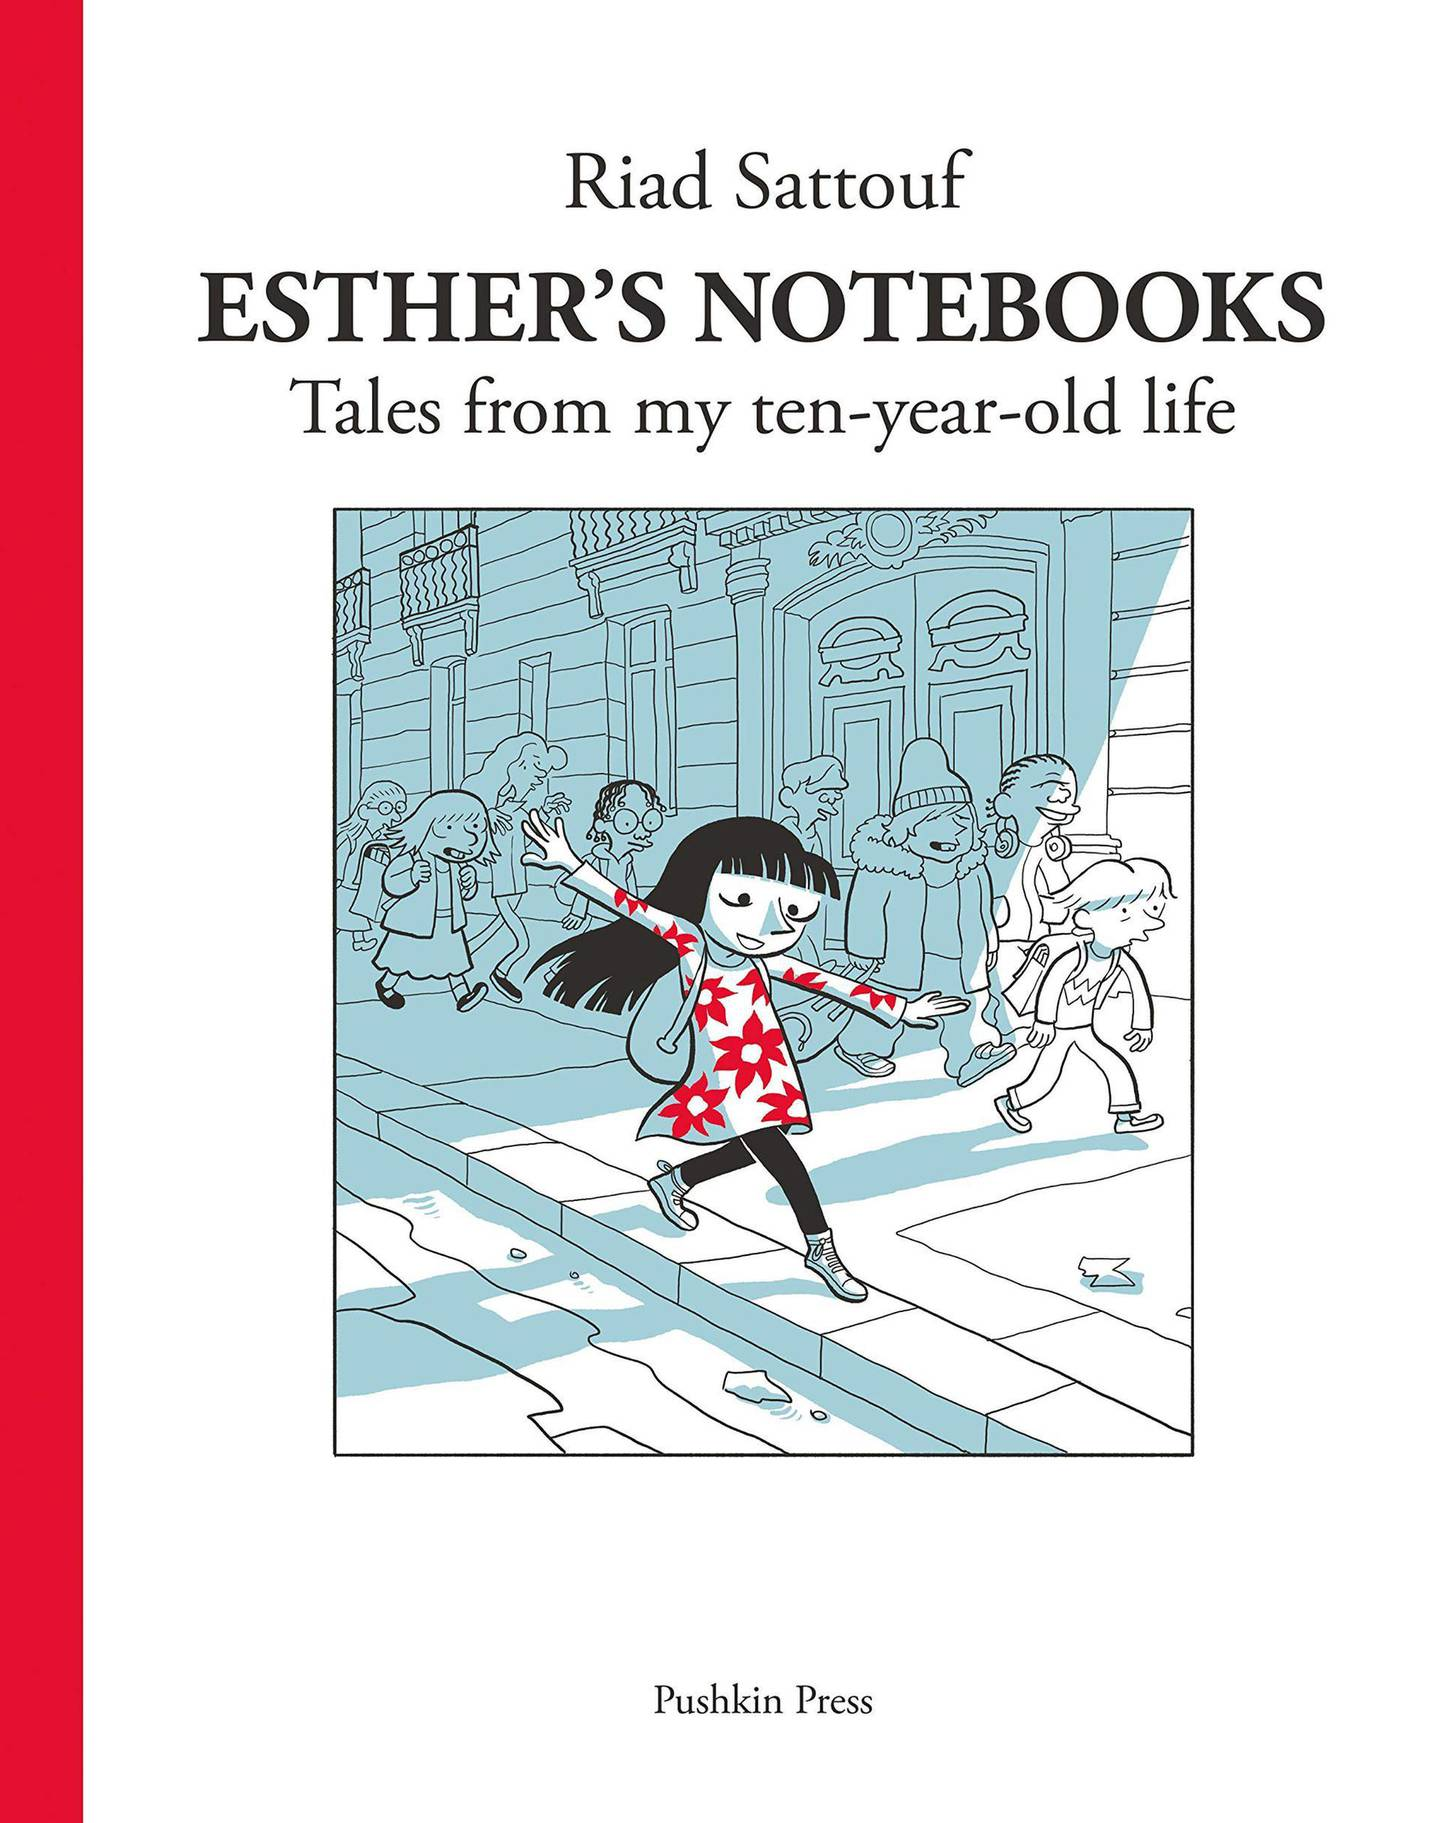 Esther's Notebooks 1: Tales from my ten-year-old life Pushkin Pressby Riad Sattouf. Courtesy Pushkin Press